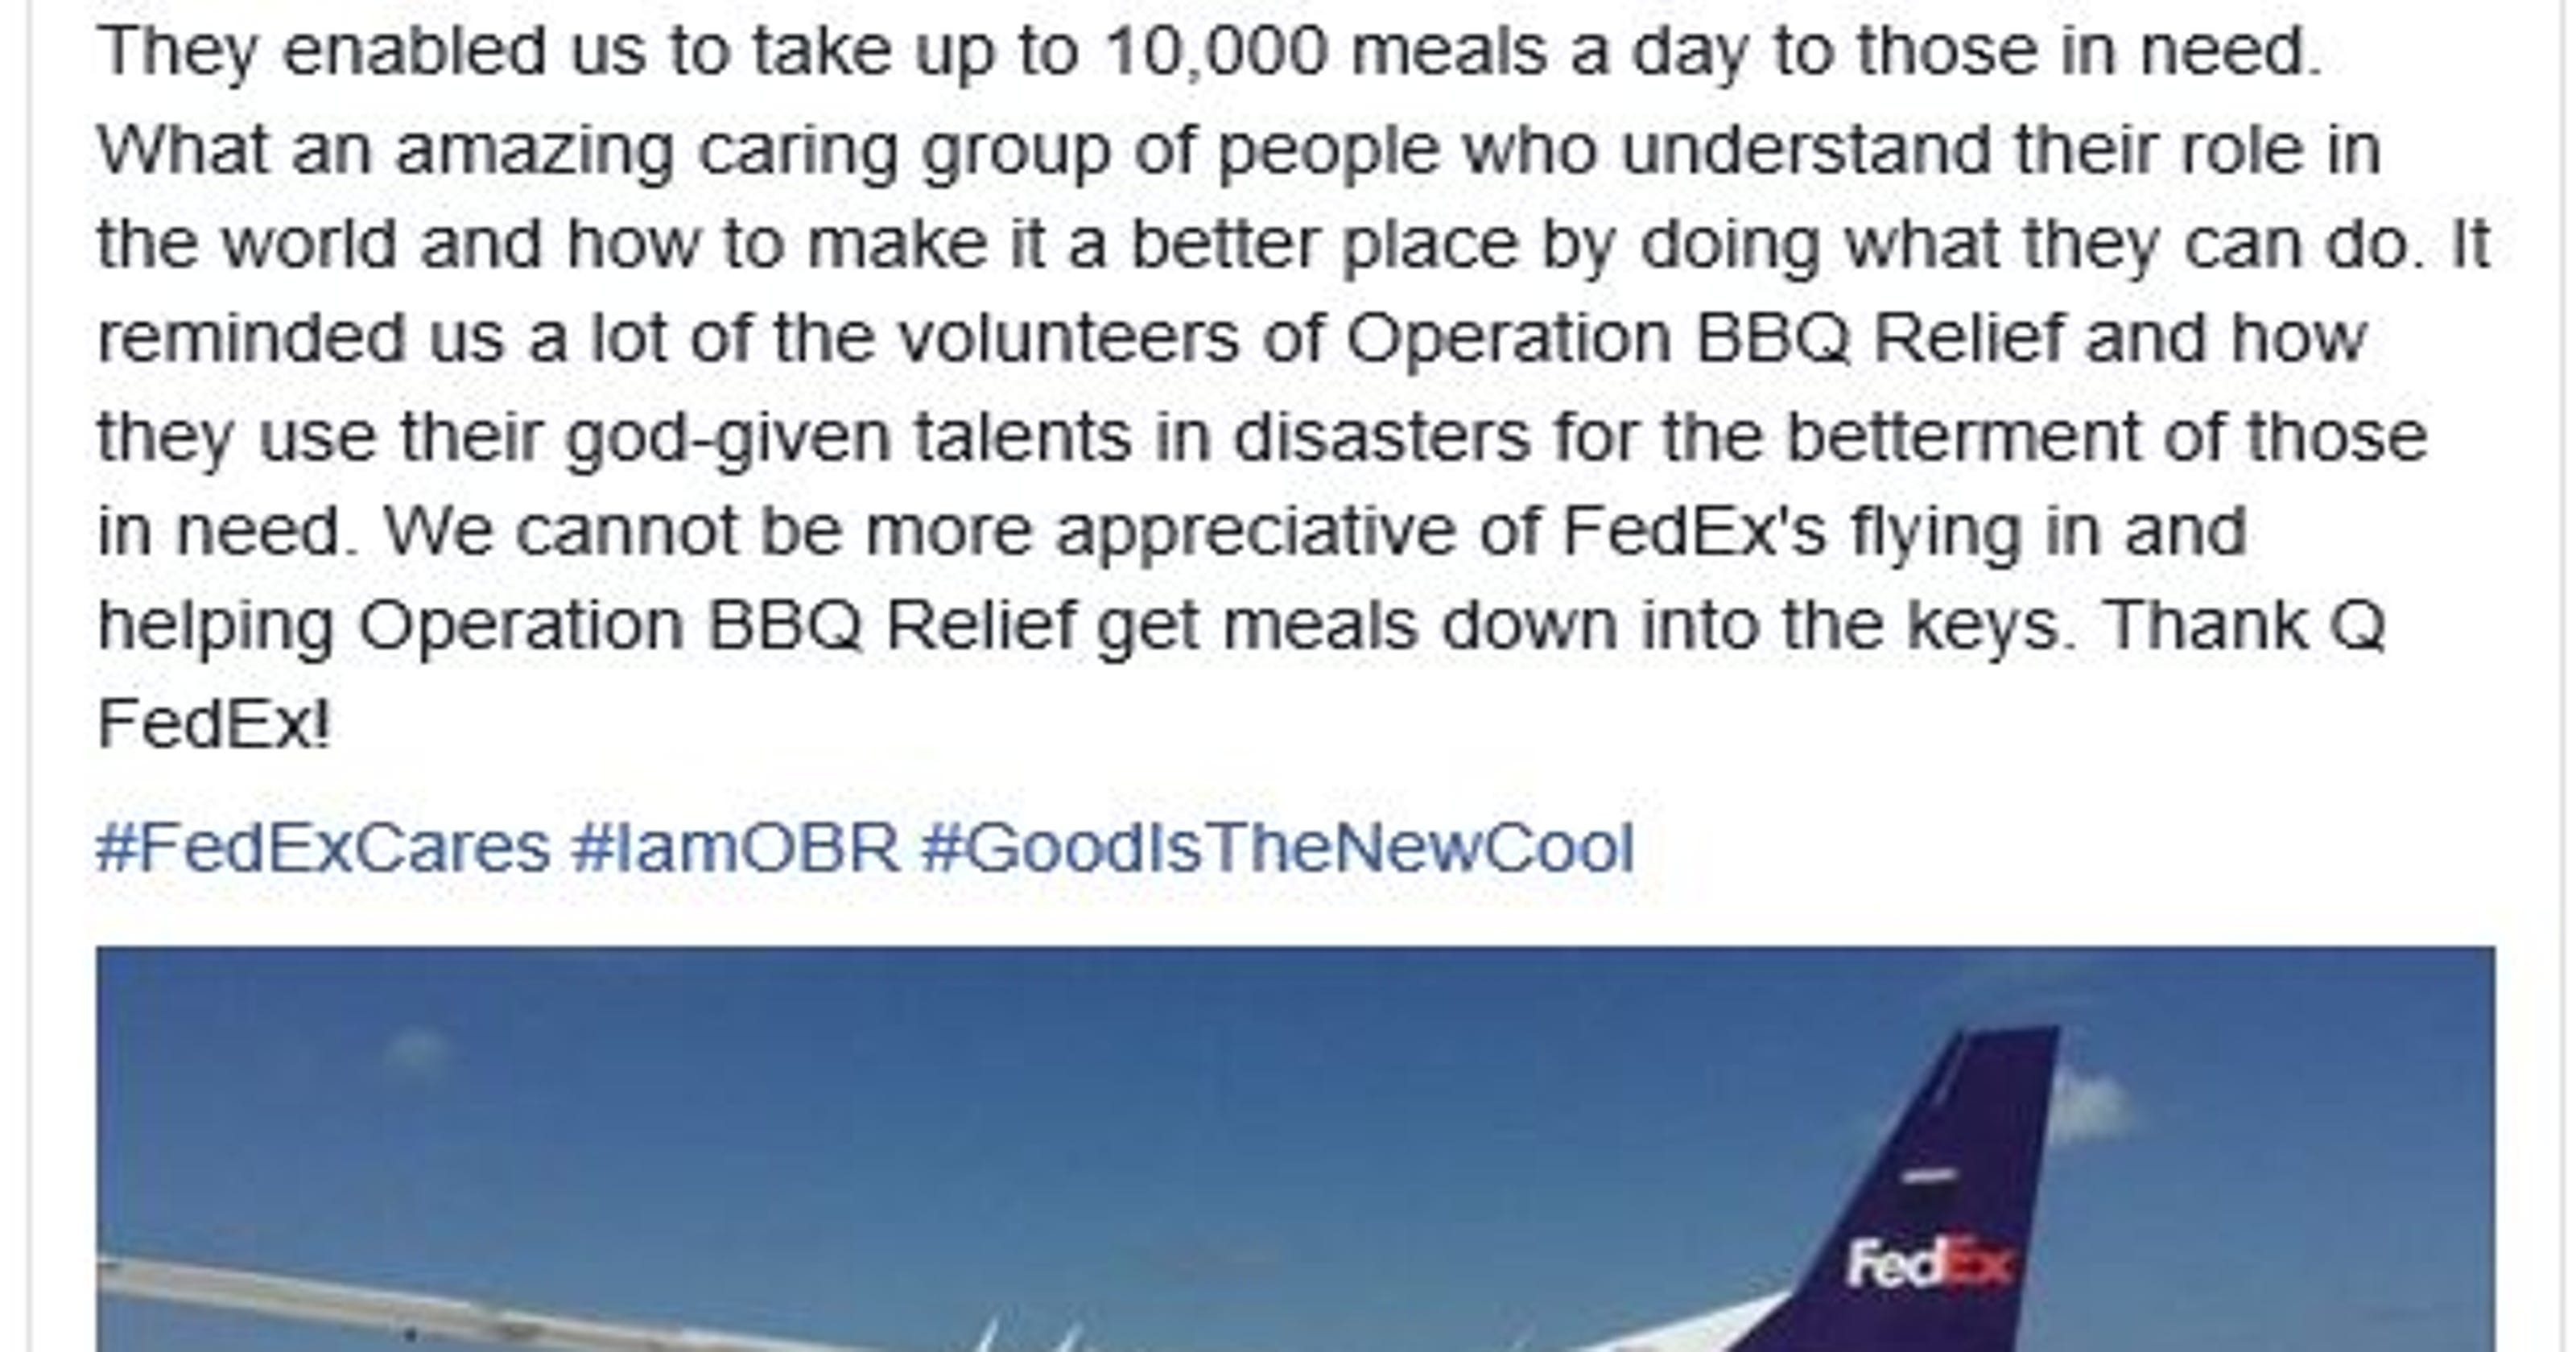 Thank Q\': FedEx airlifts barbecue to Irma victims in Florida Keys